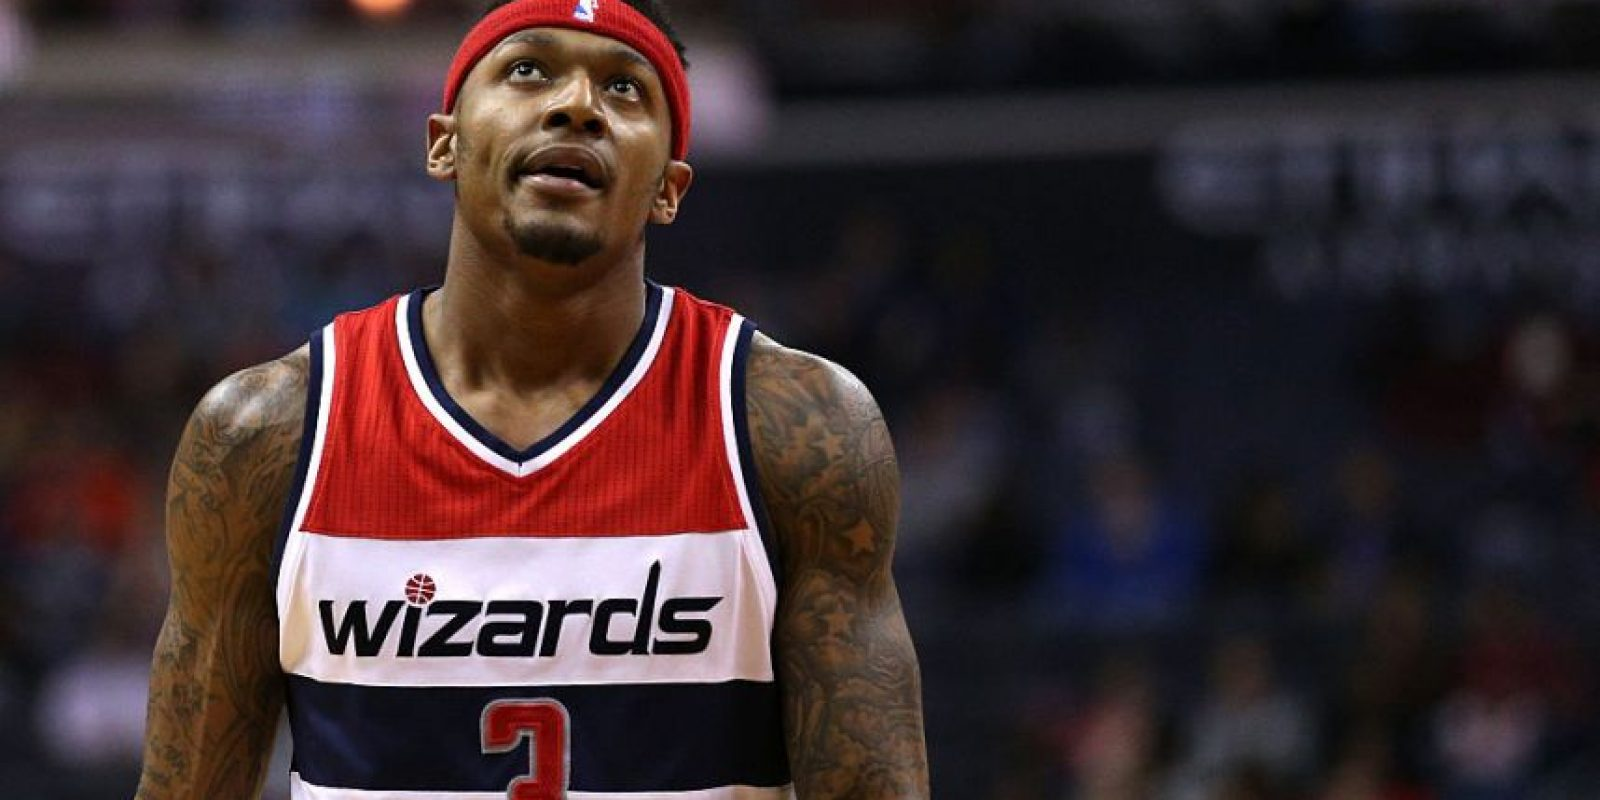 16.-Bradley Beal (Washington Wizards) – 22.116.750